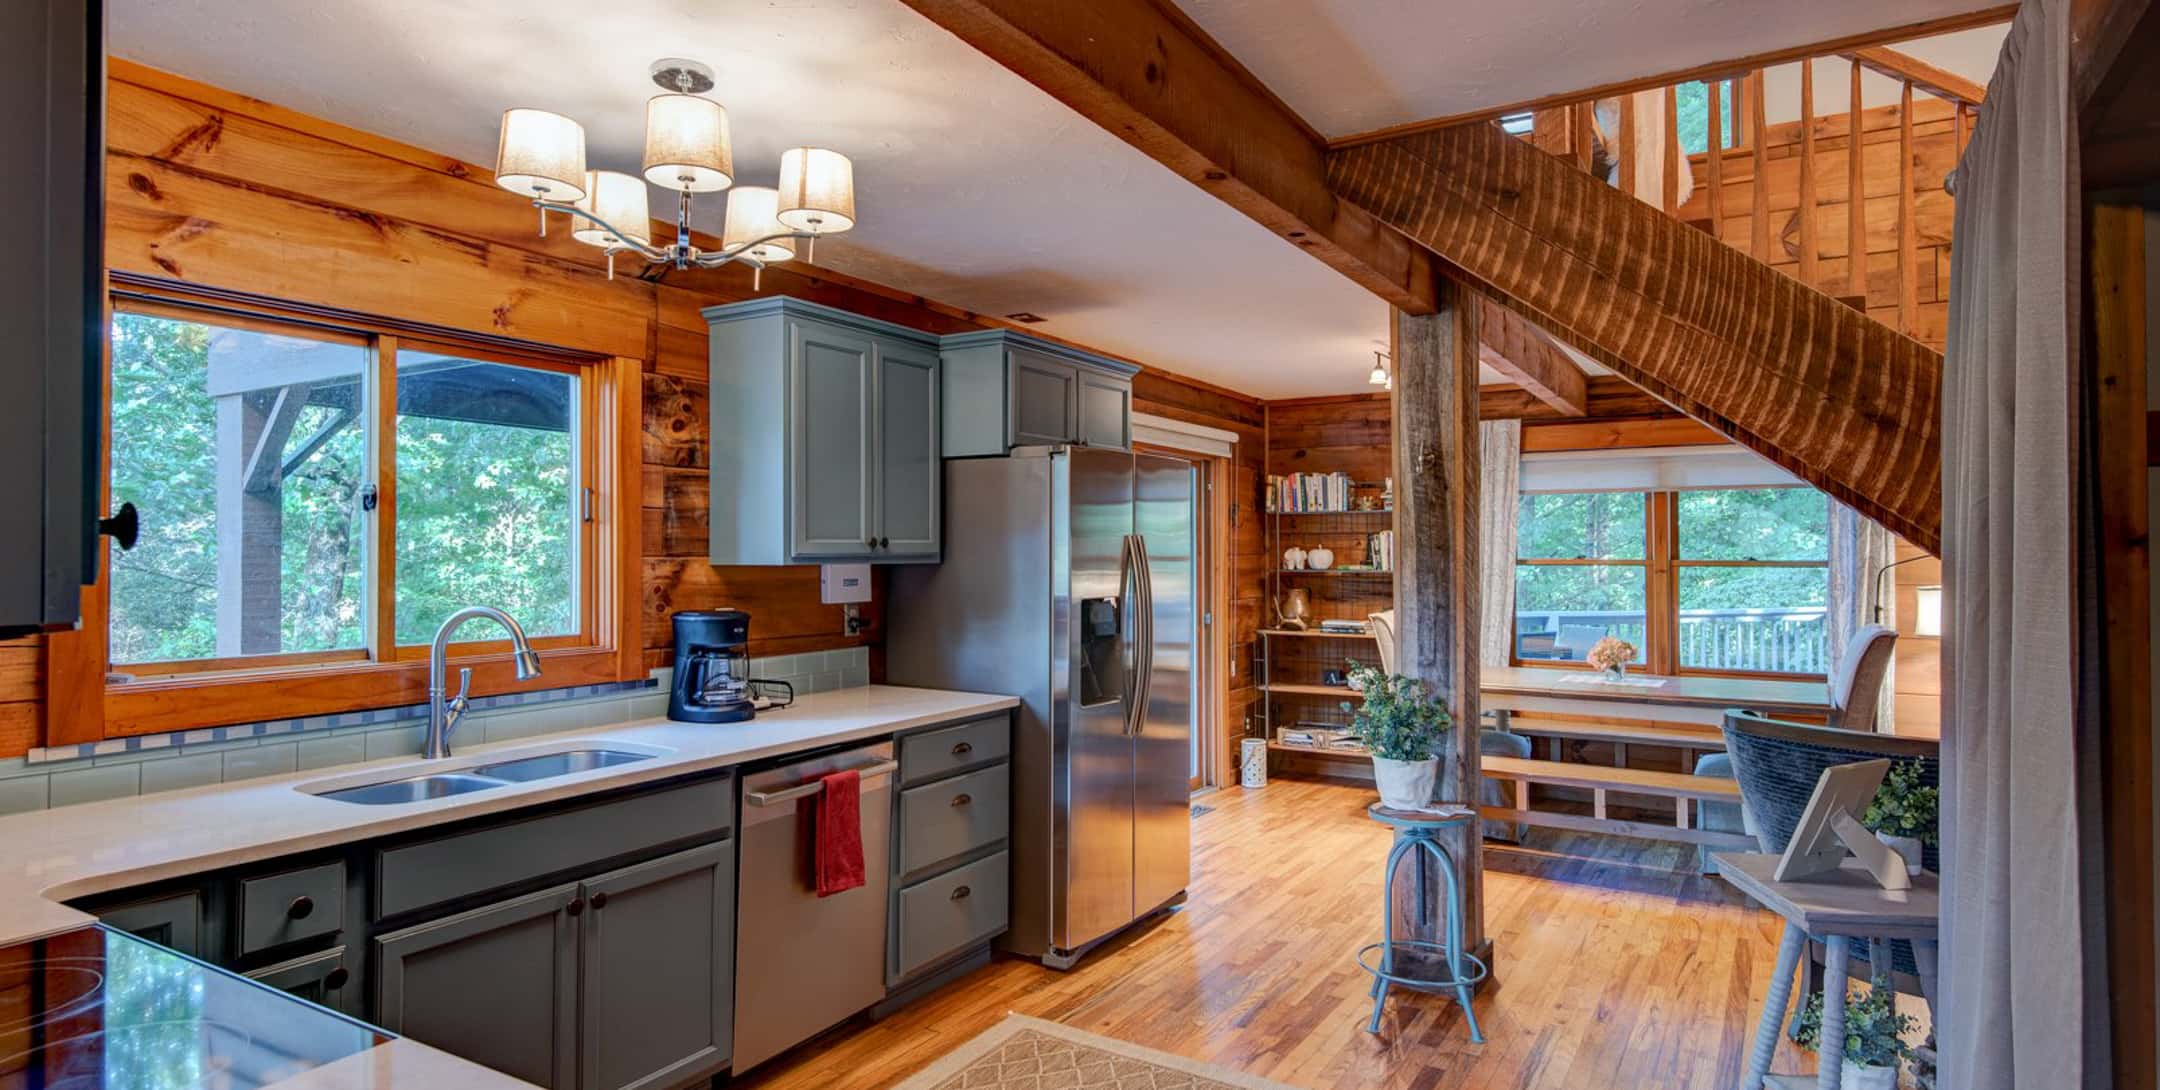 Spacious kitchen in the Raspberry Hill Cabin